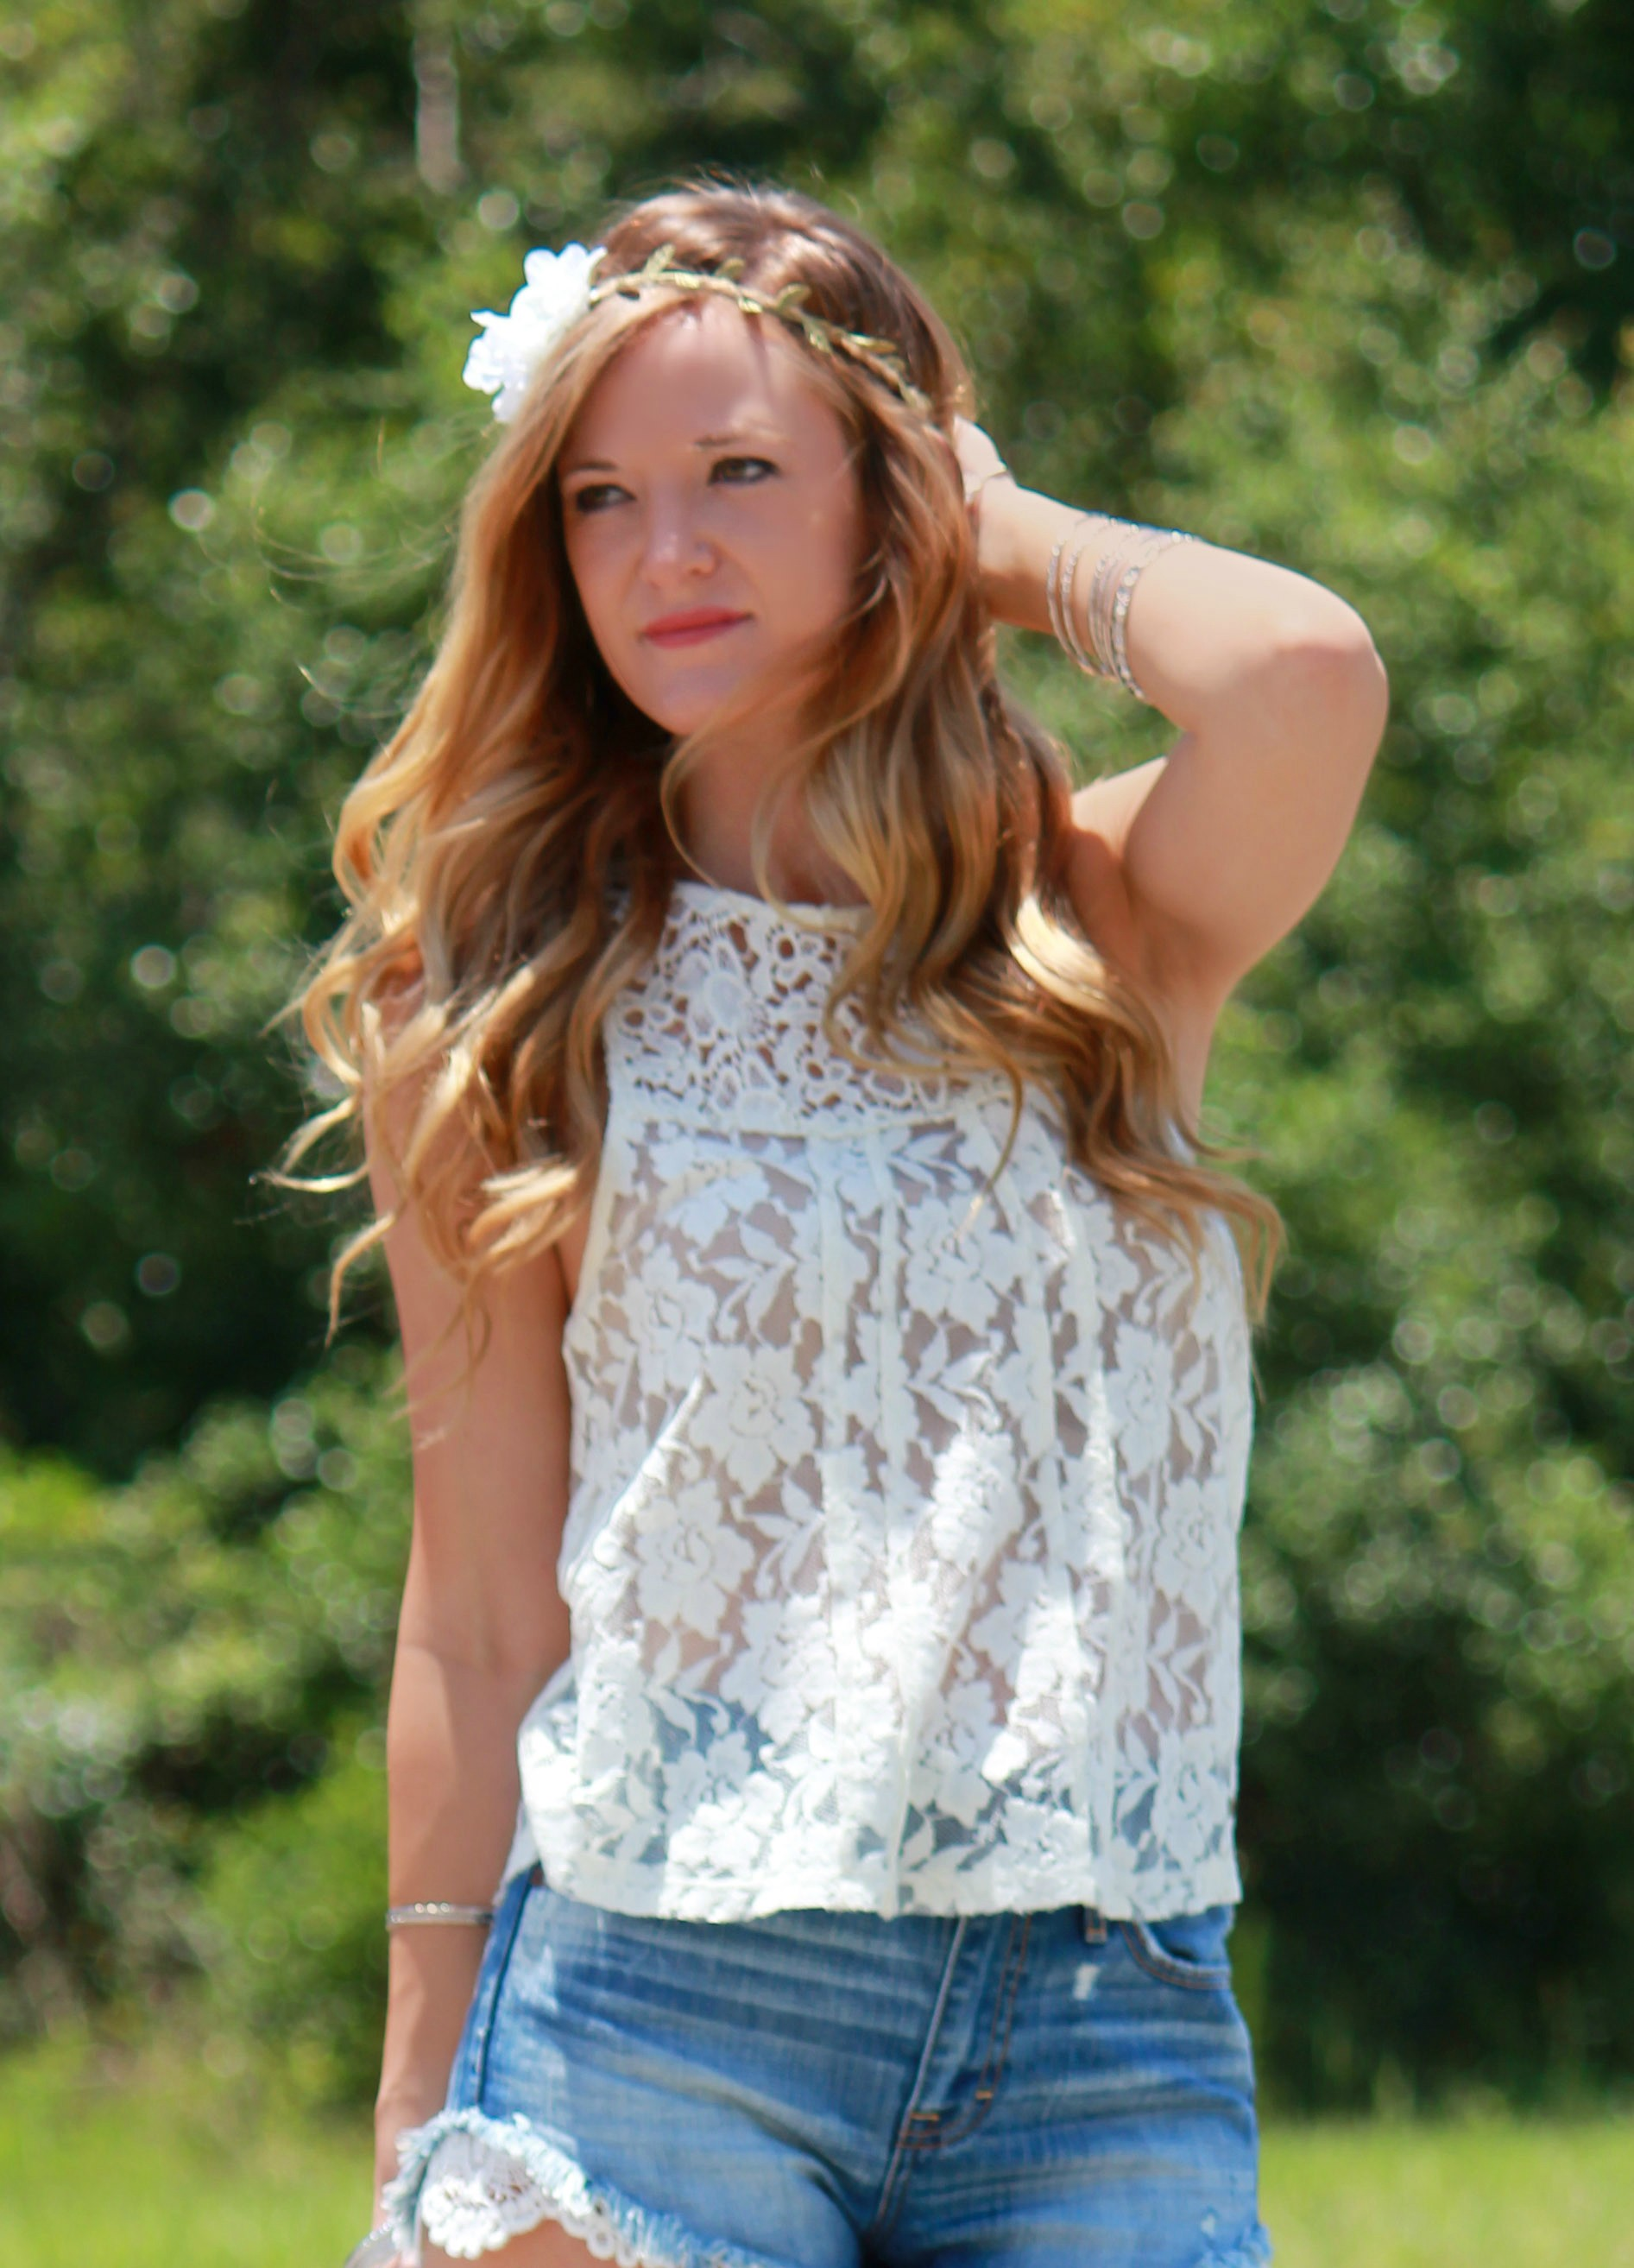 abercrombie top. abercrombie shorts, lace top, lace shorts, lace and jeans shorts, summer outfit, summer casual outfit, flower headband, claries flower headband, dsw boots